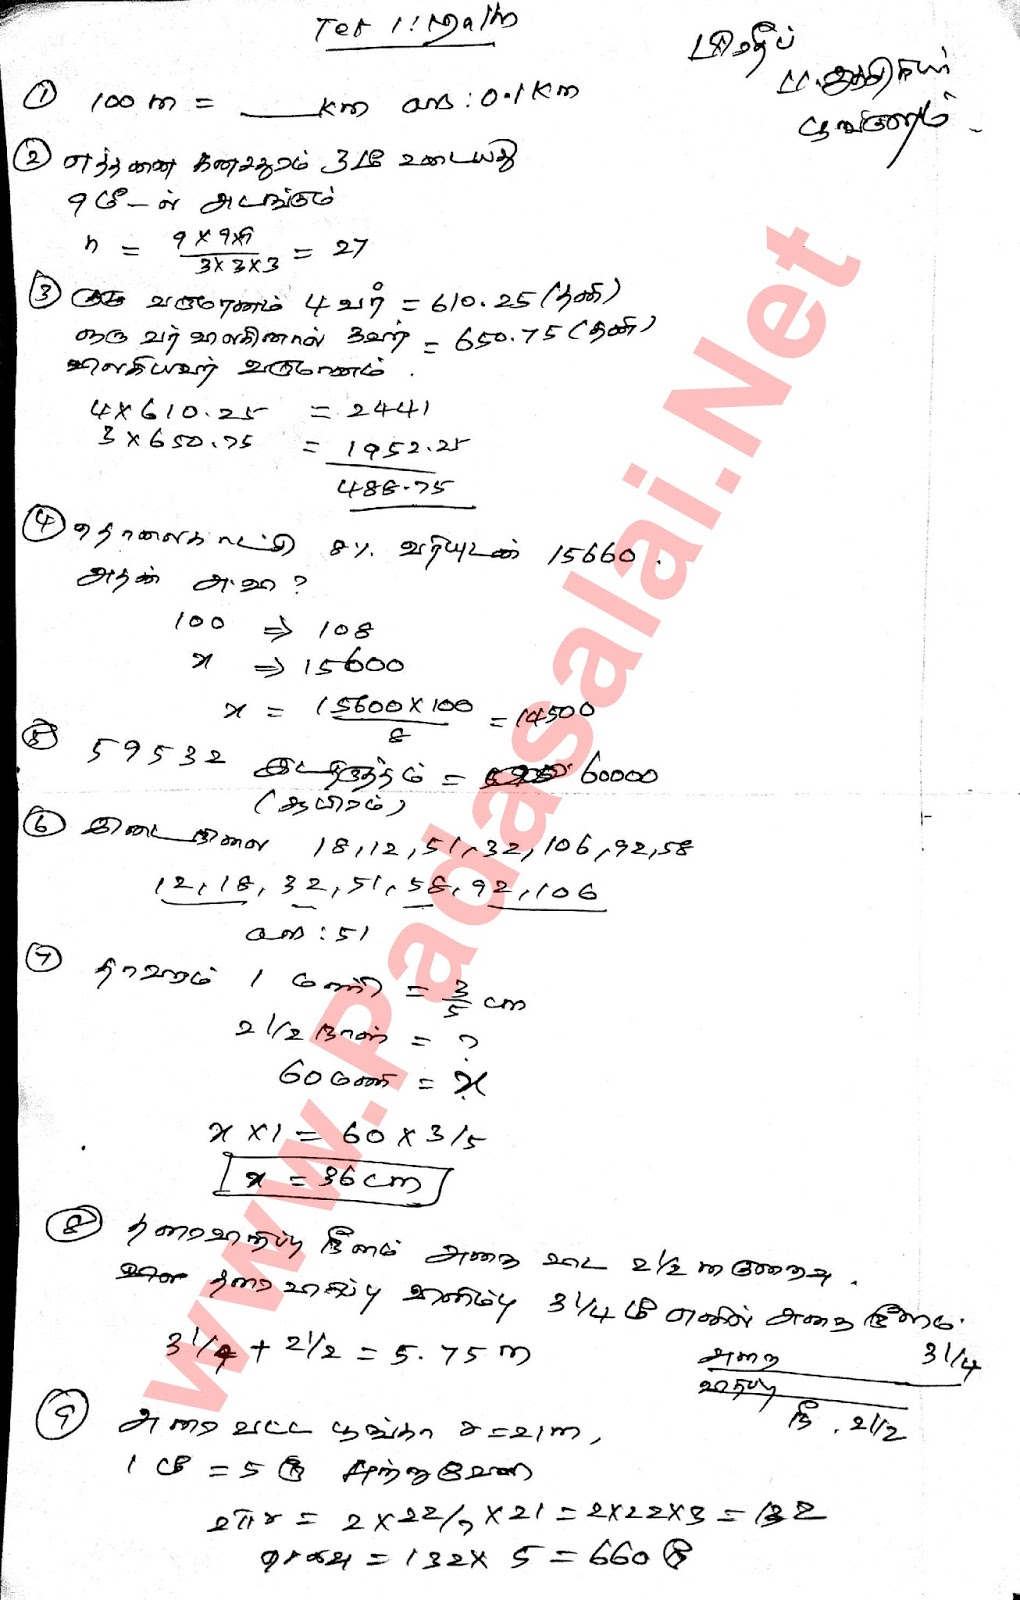 Click here for download tet key answers